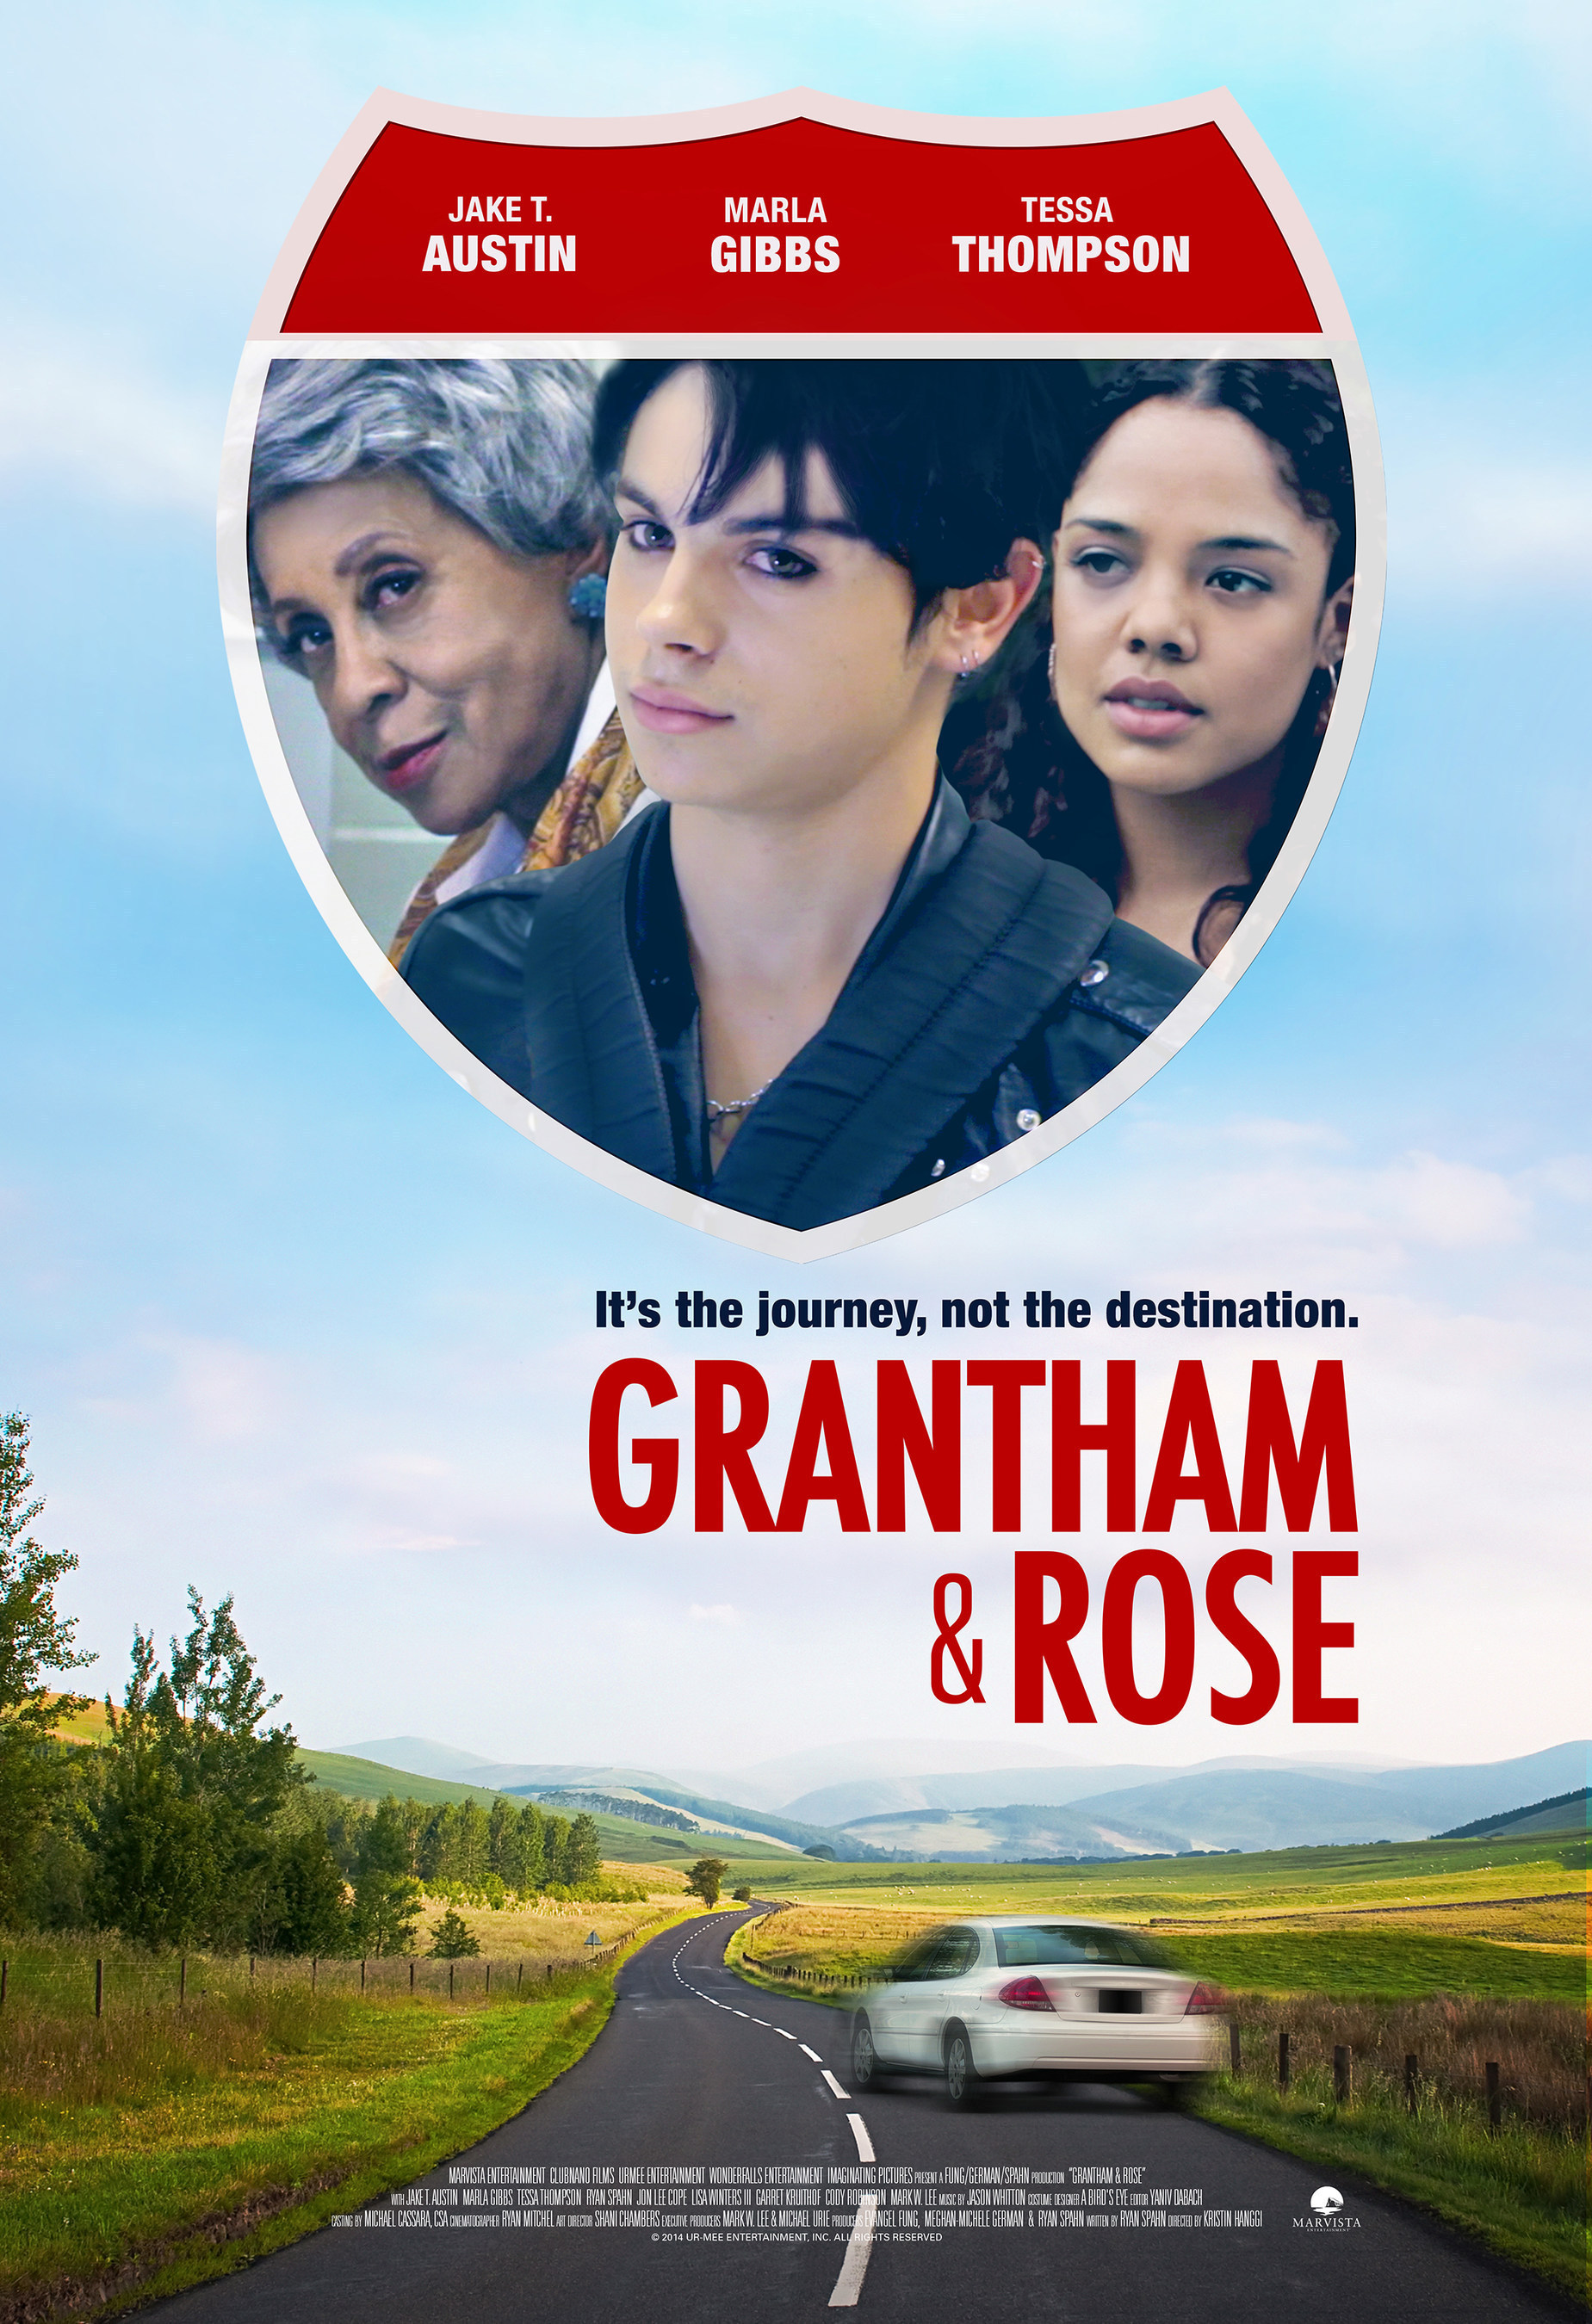 grantham and rose ending a relationship